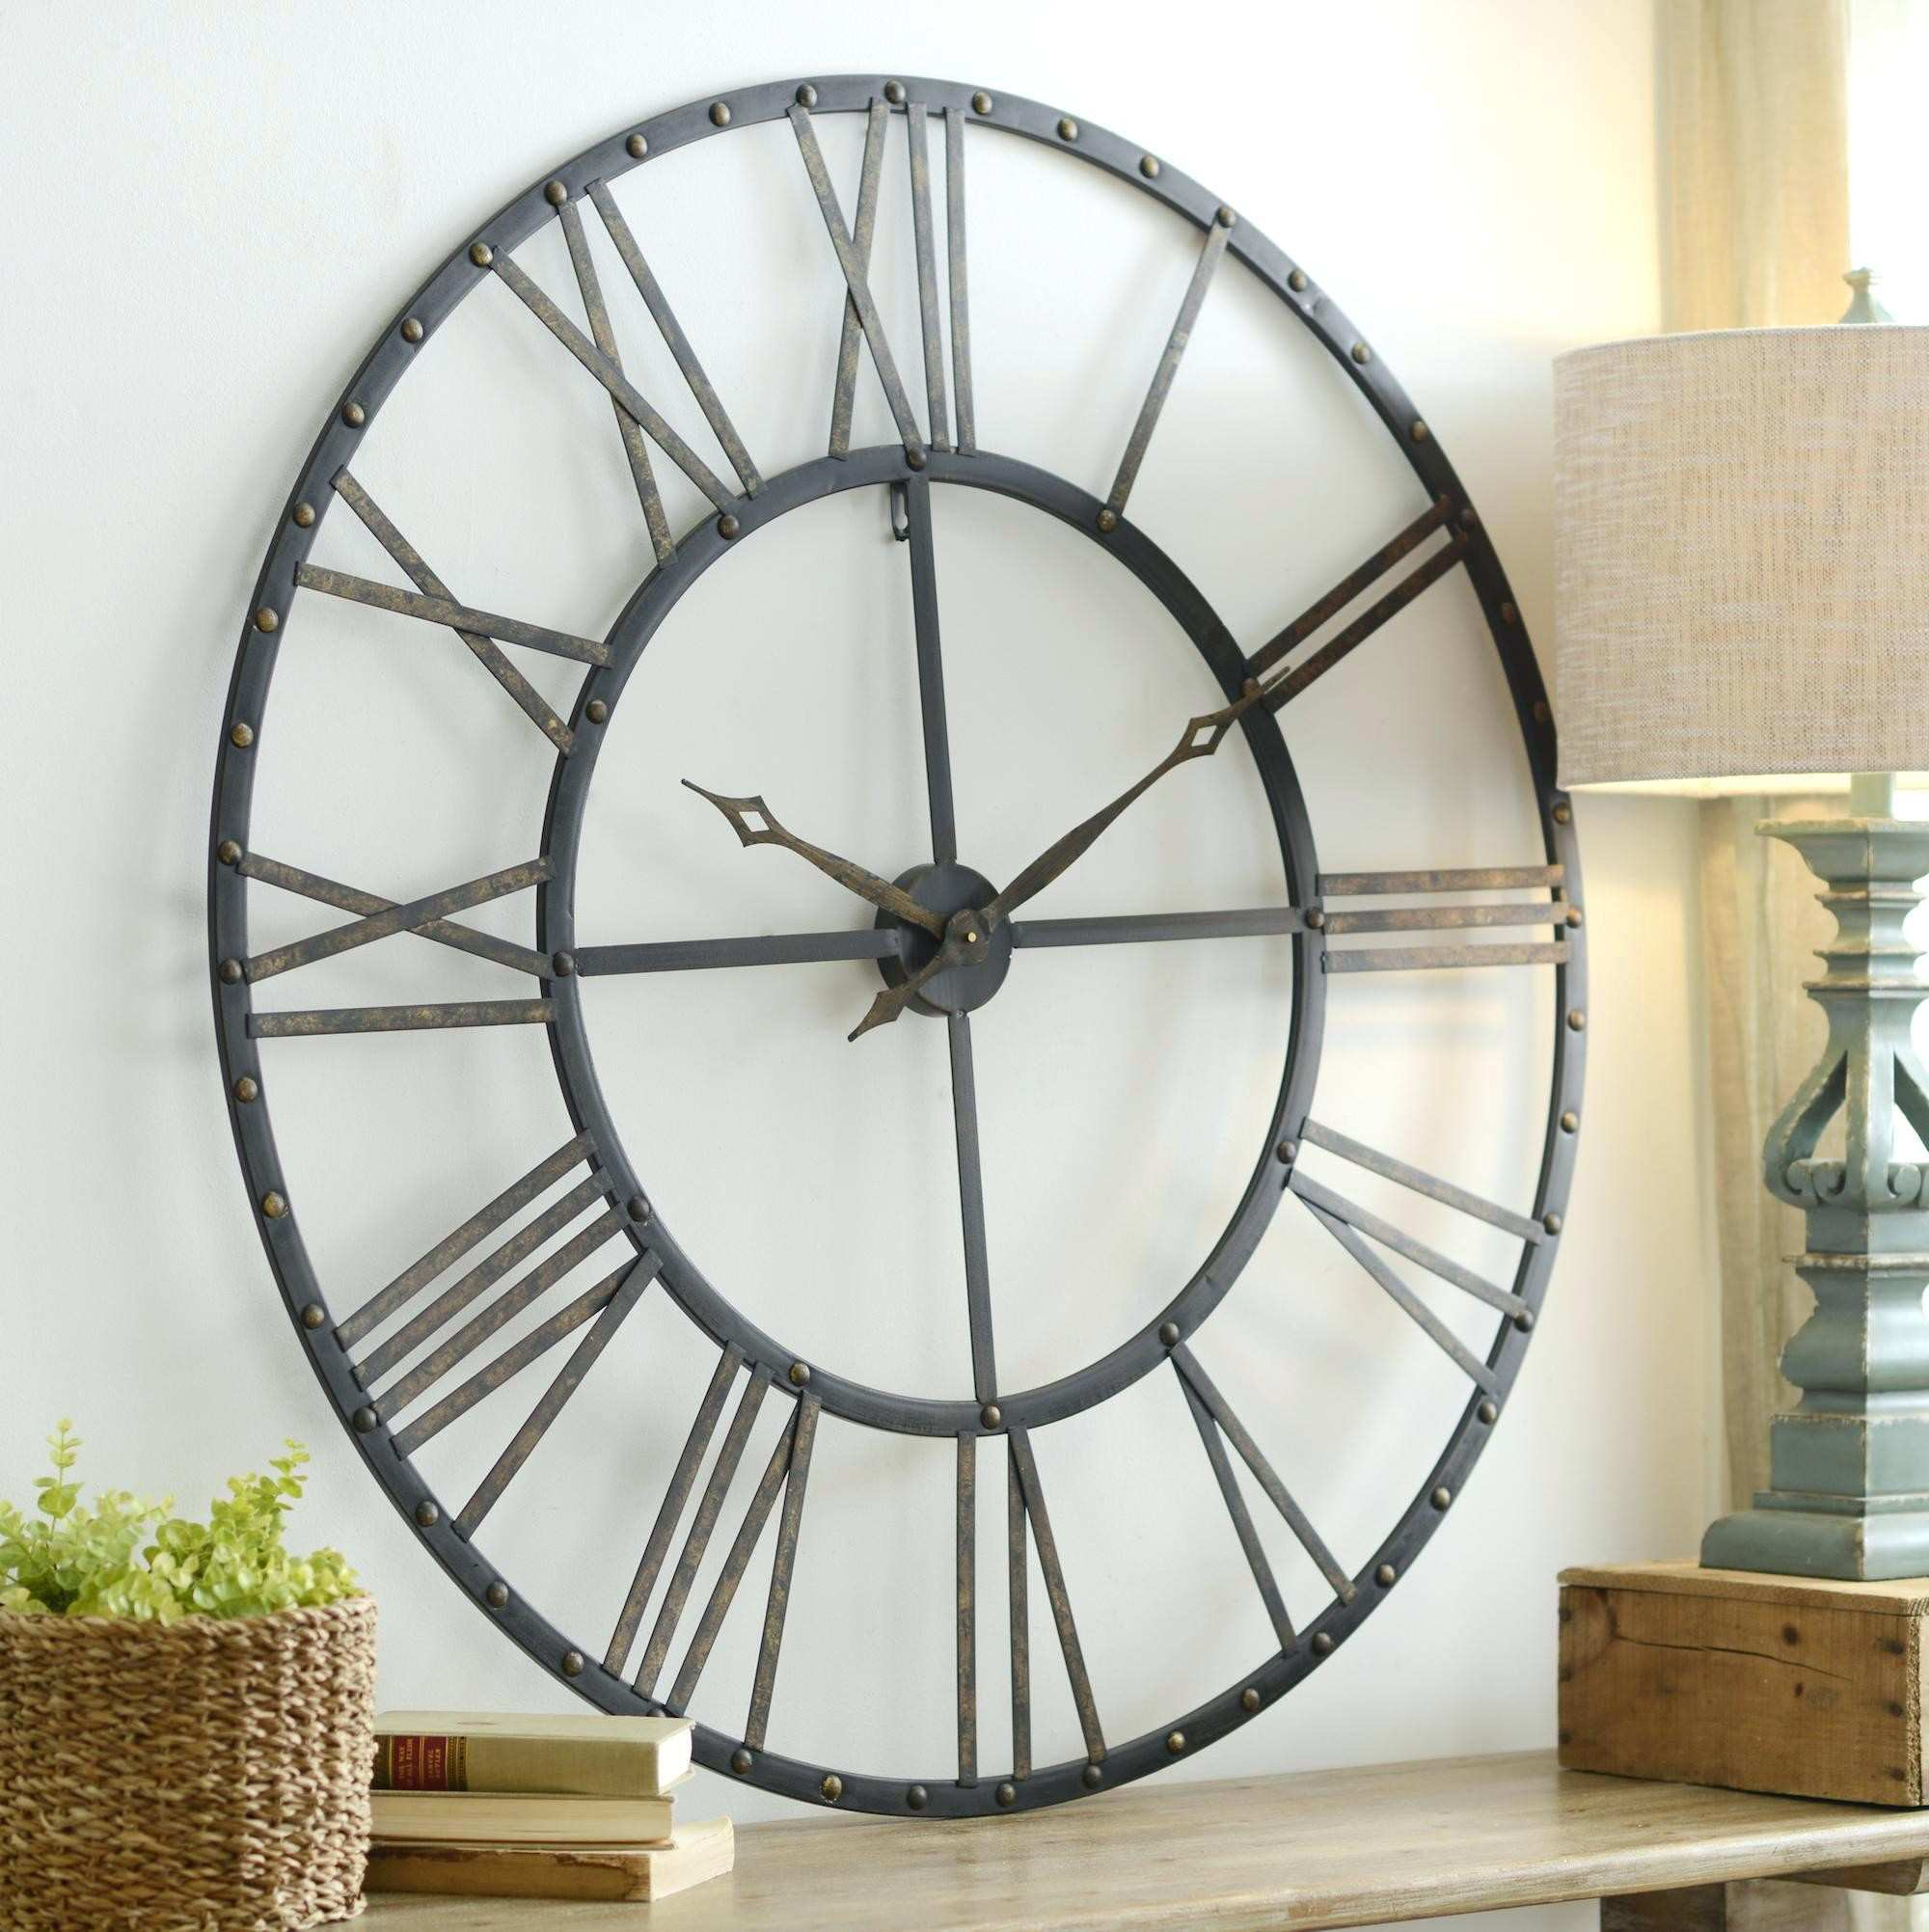 Wall Clocks Driftwood Wall Clocks Uk Driftwood Wall Clock Design